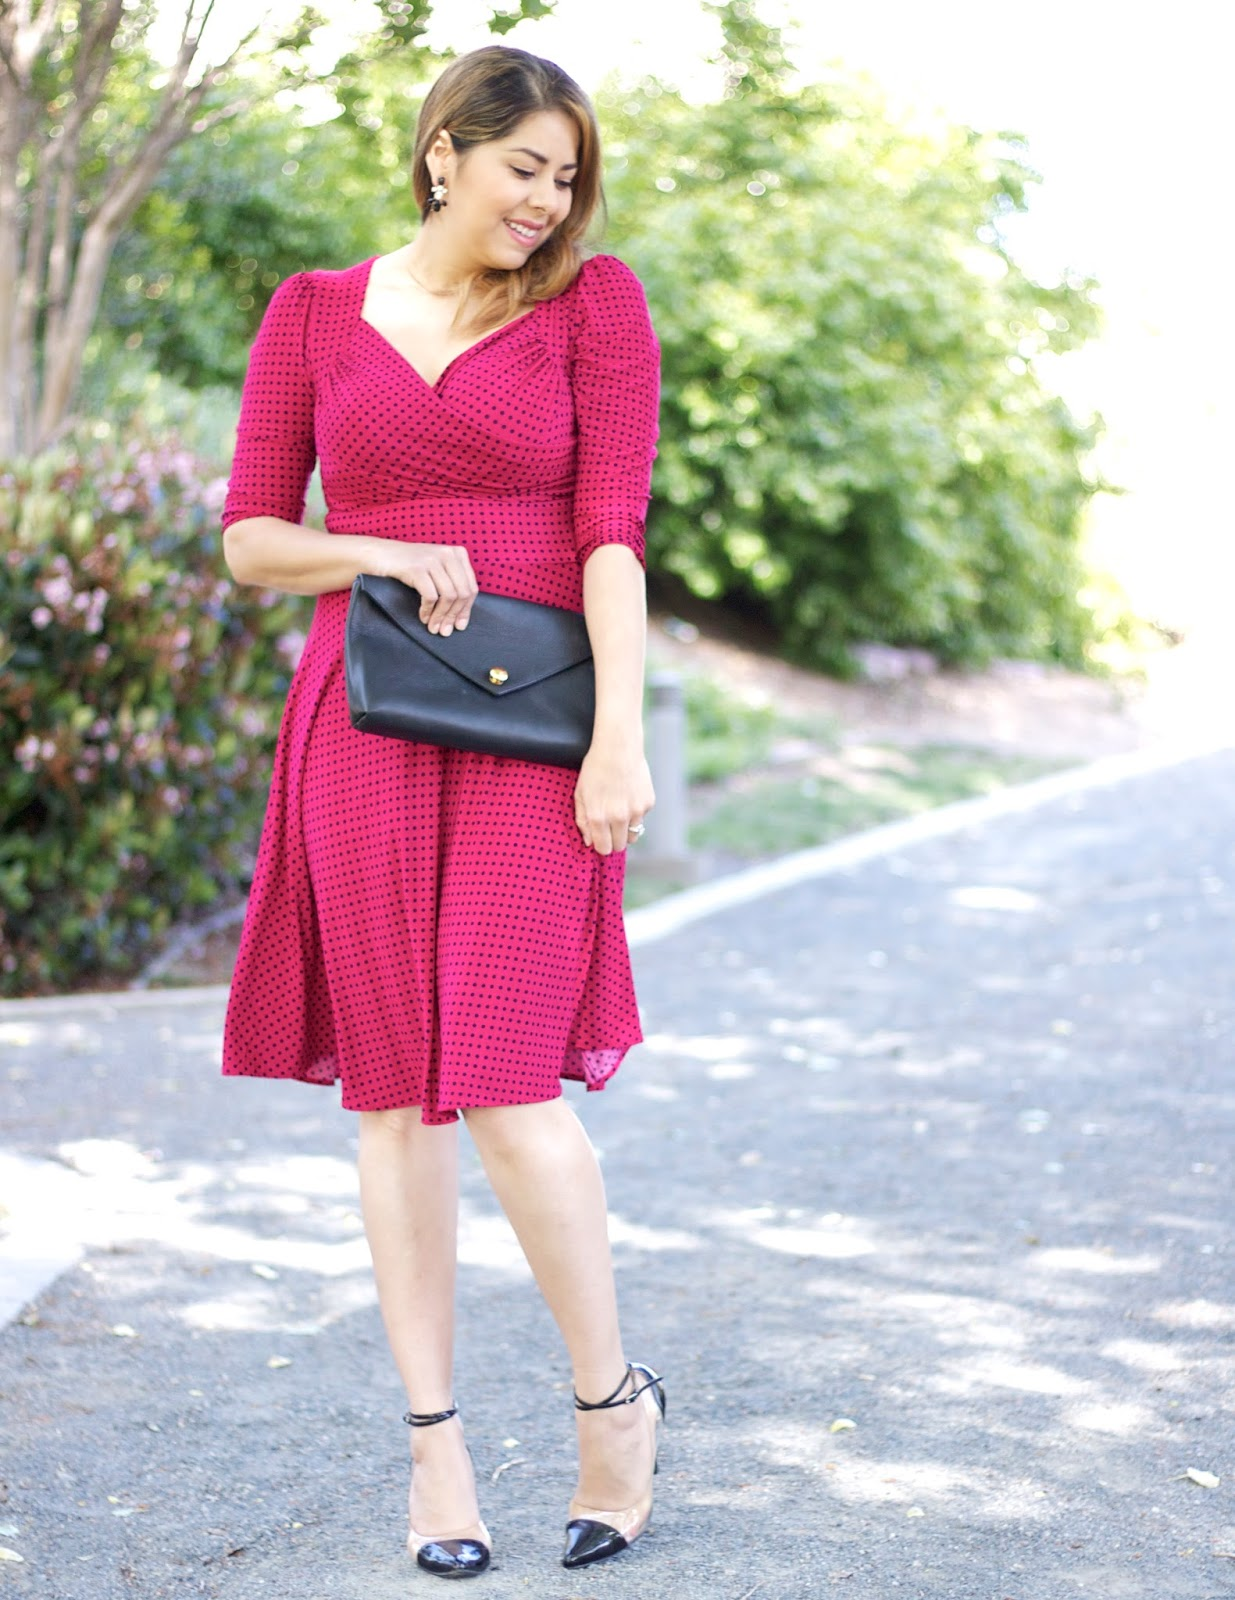 Berry and Dot Dress, San Diego Fashion Blogger, what to wear to a wedding, what to wear to a cocktail party